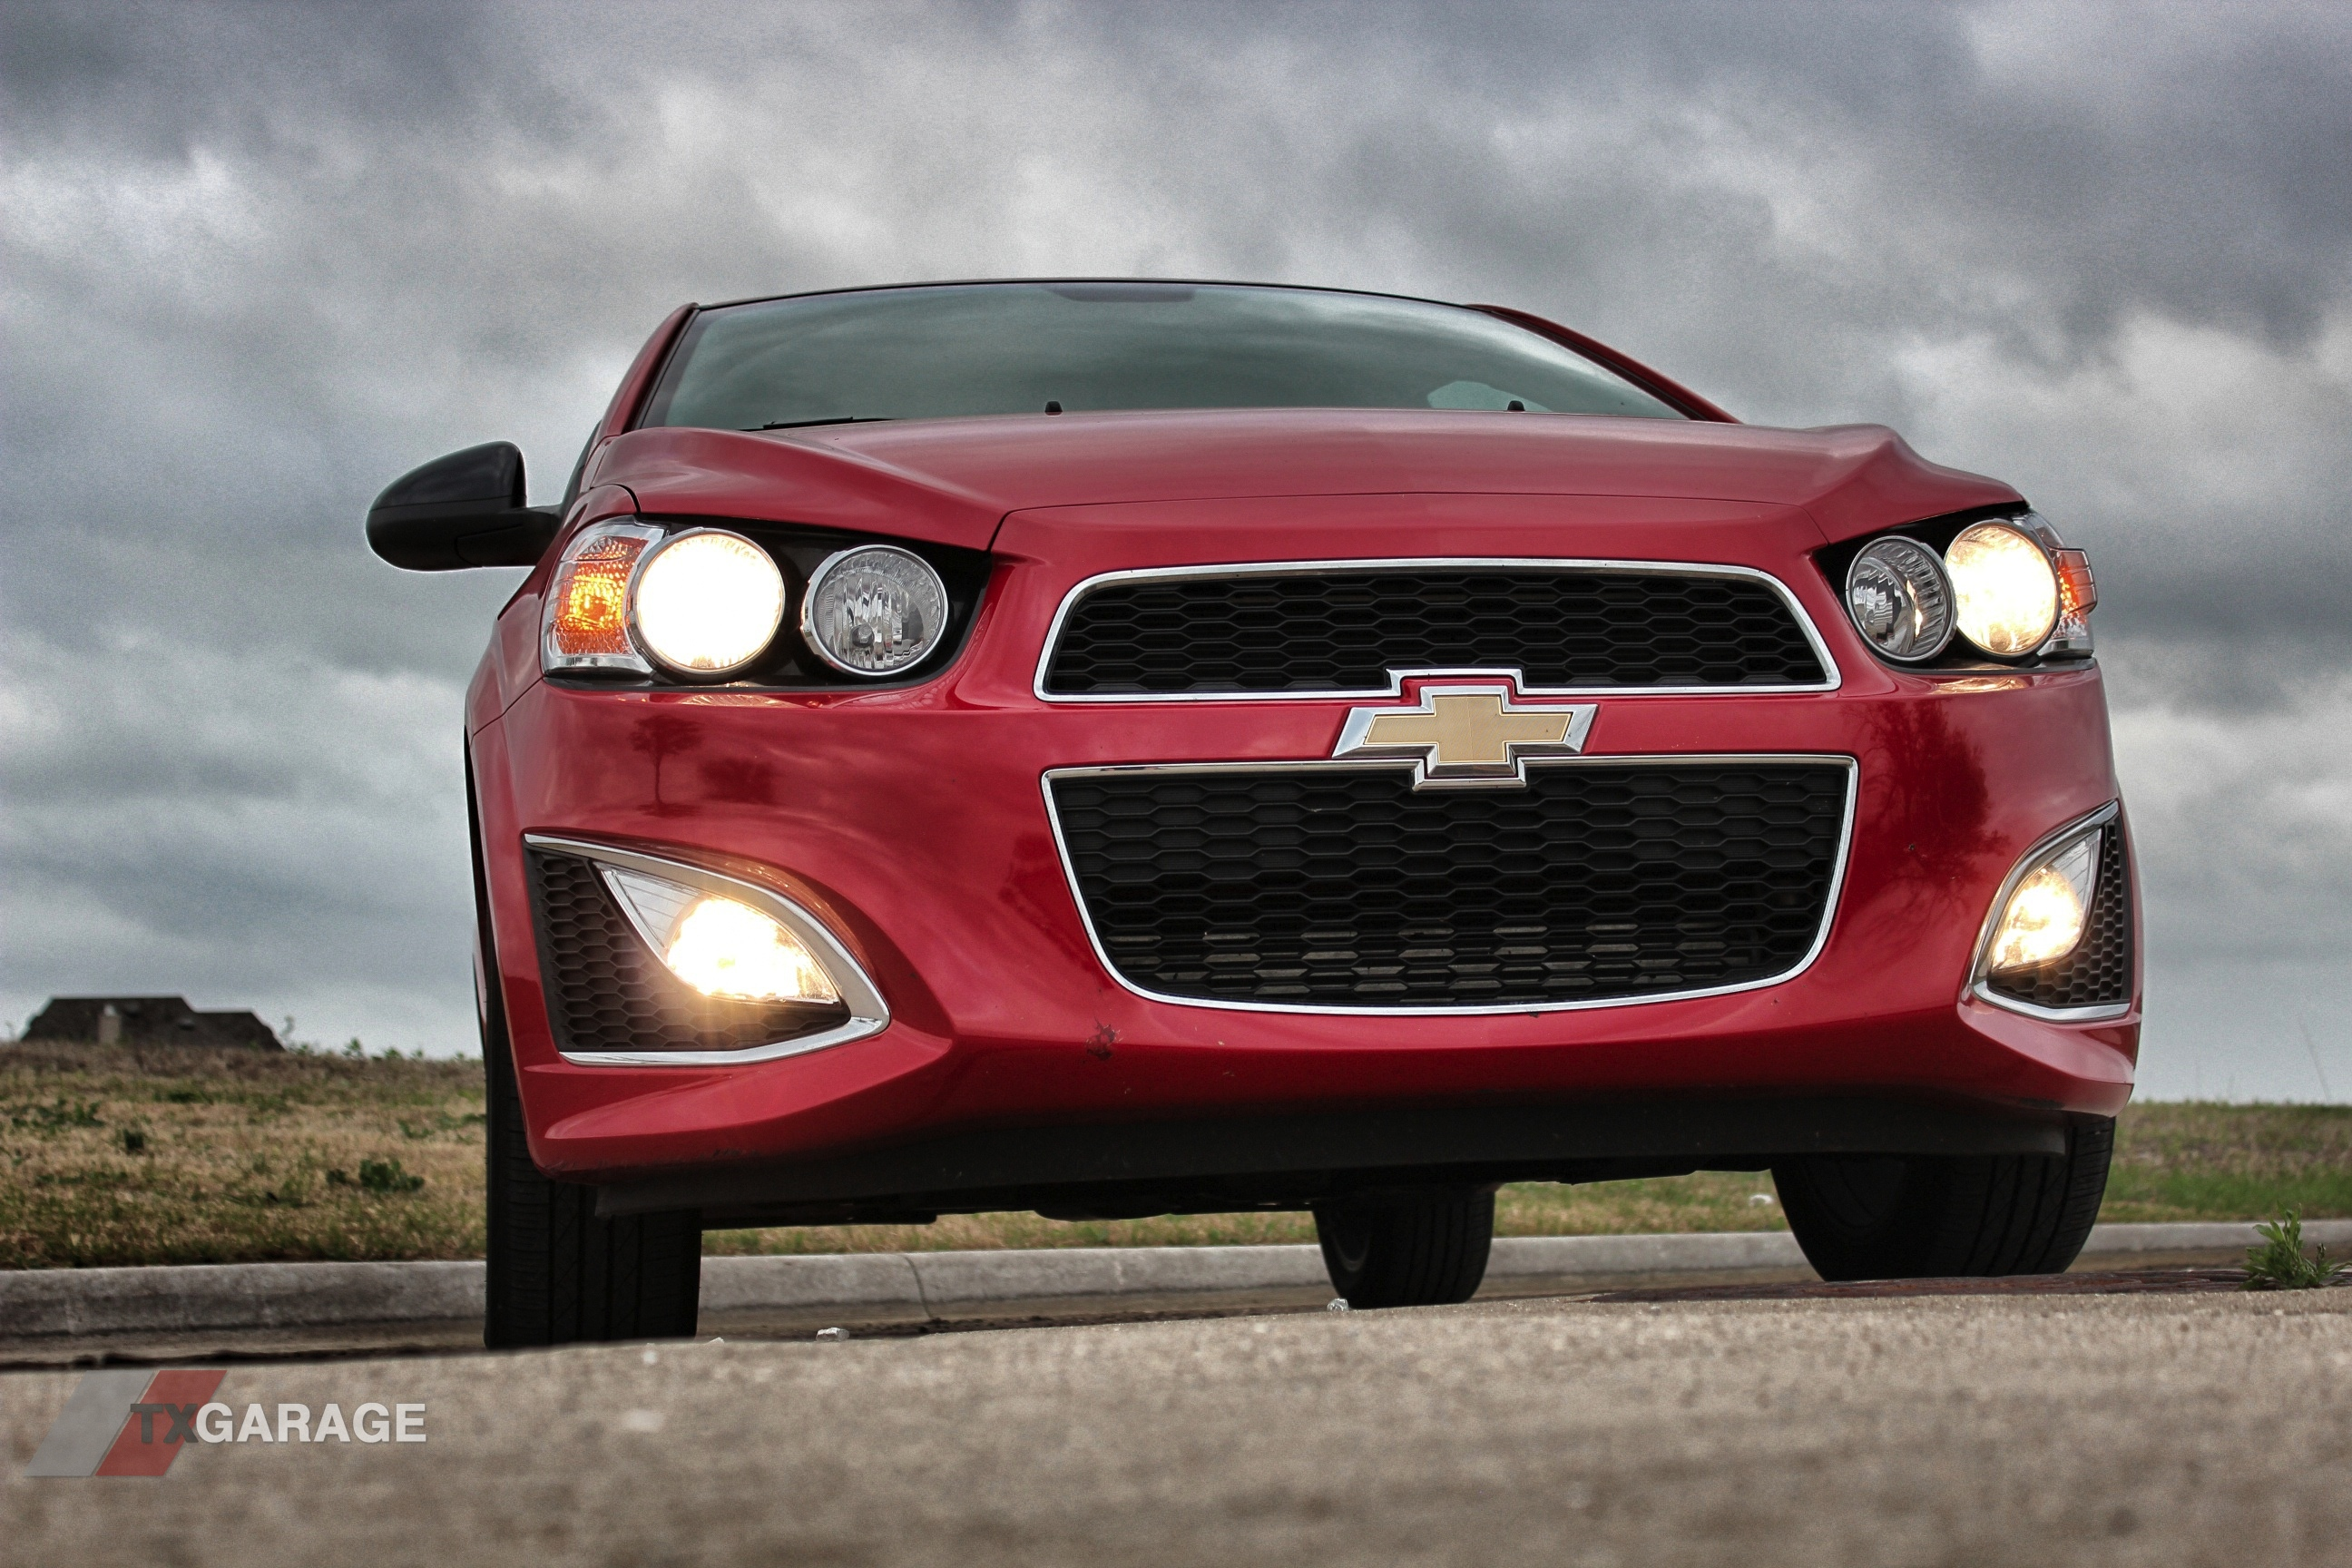 2013 Chevrolet Sonic Rs 05 Txgarage